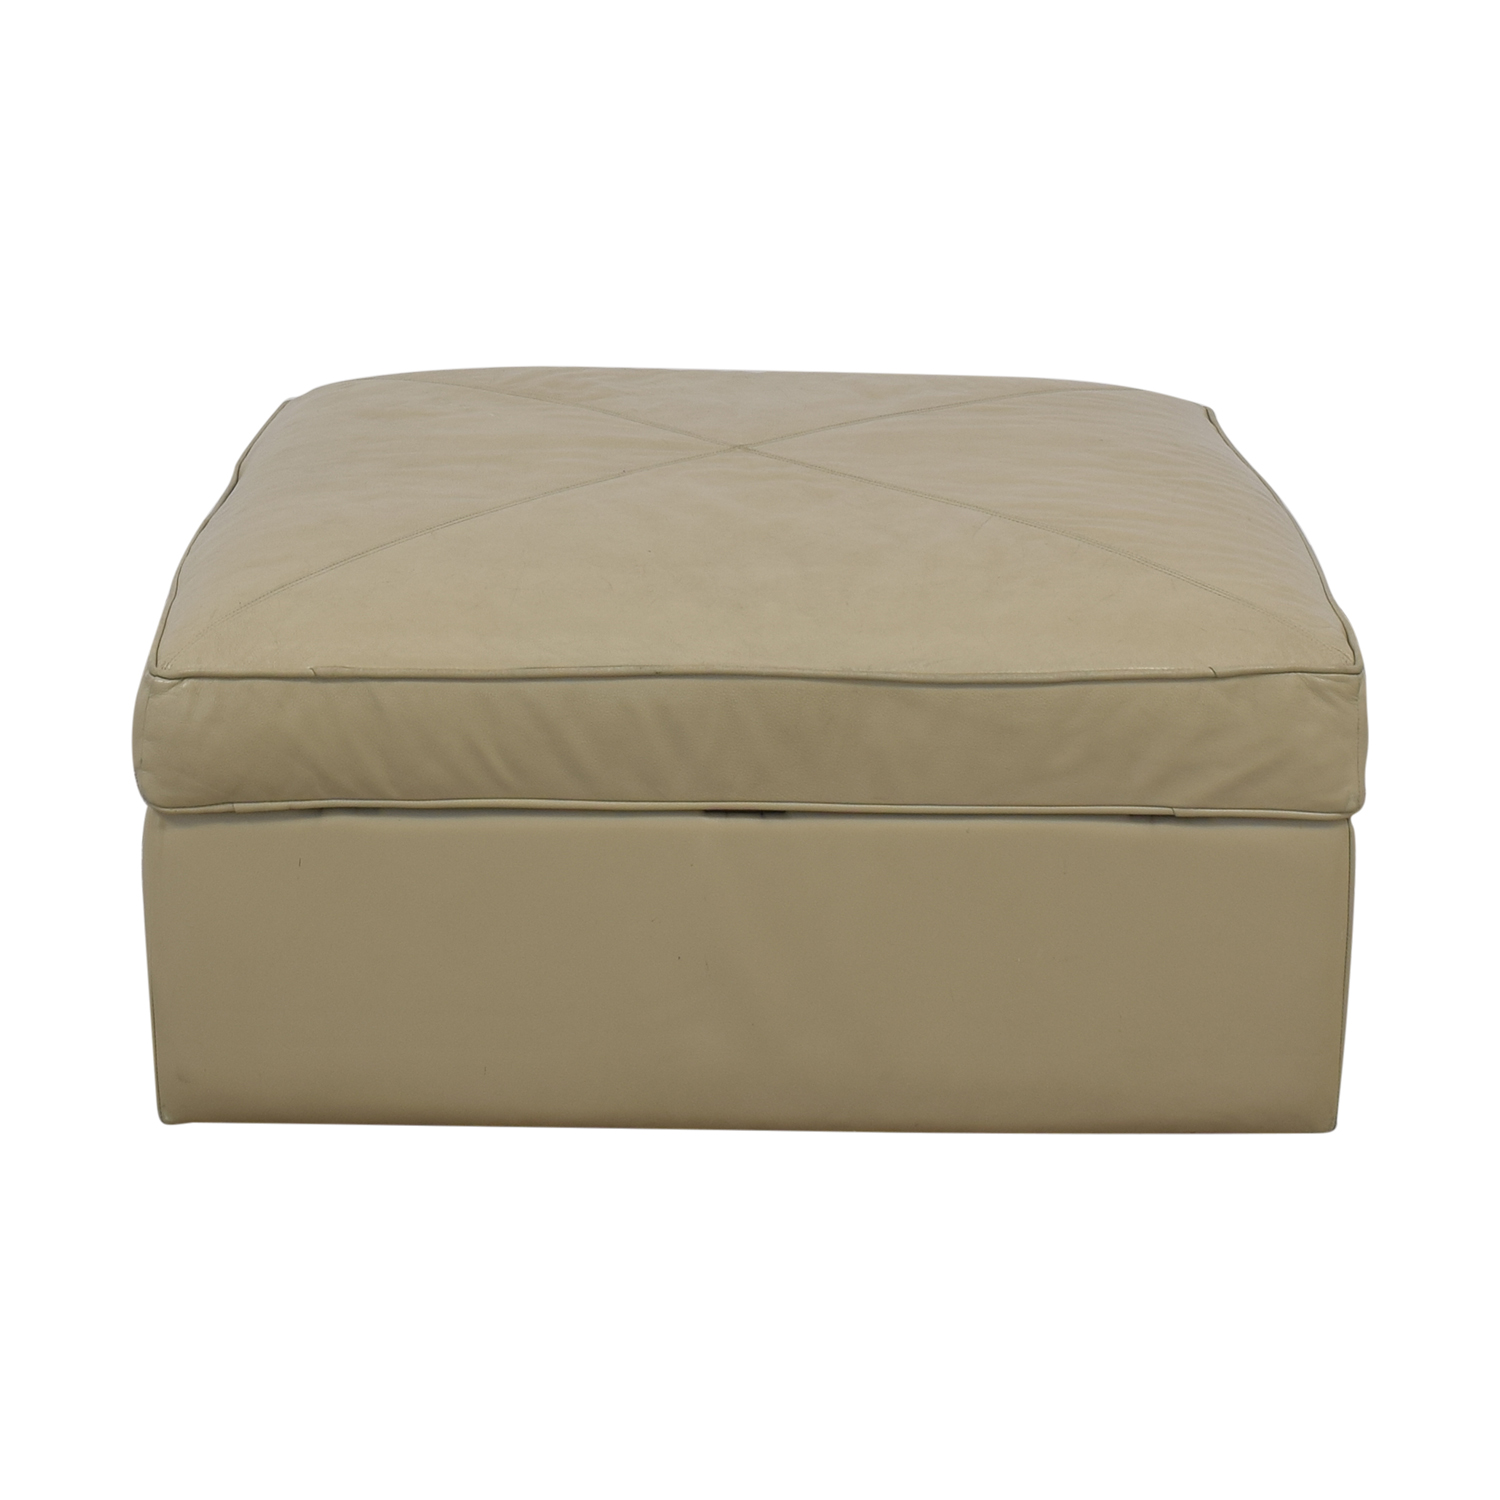 Bassett Furniture Bassett Furniture Square Storage Ottoman Storage